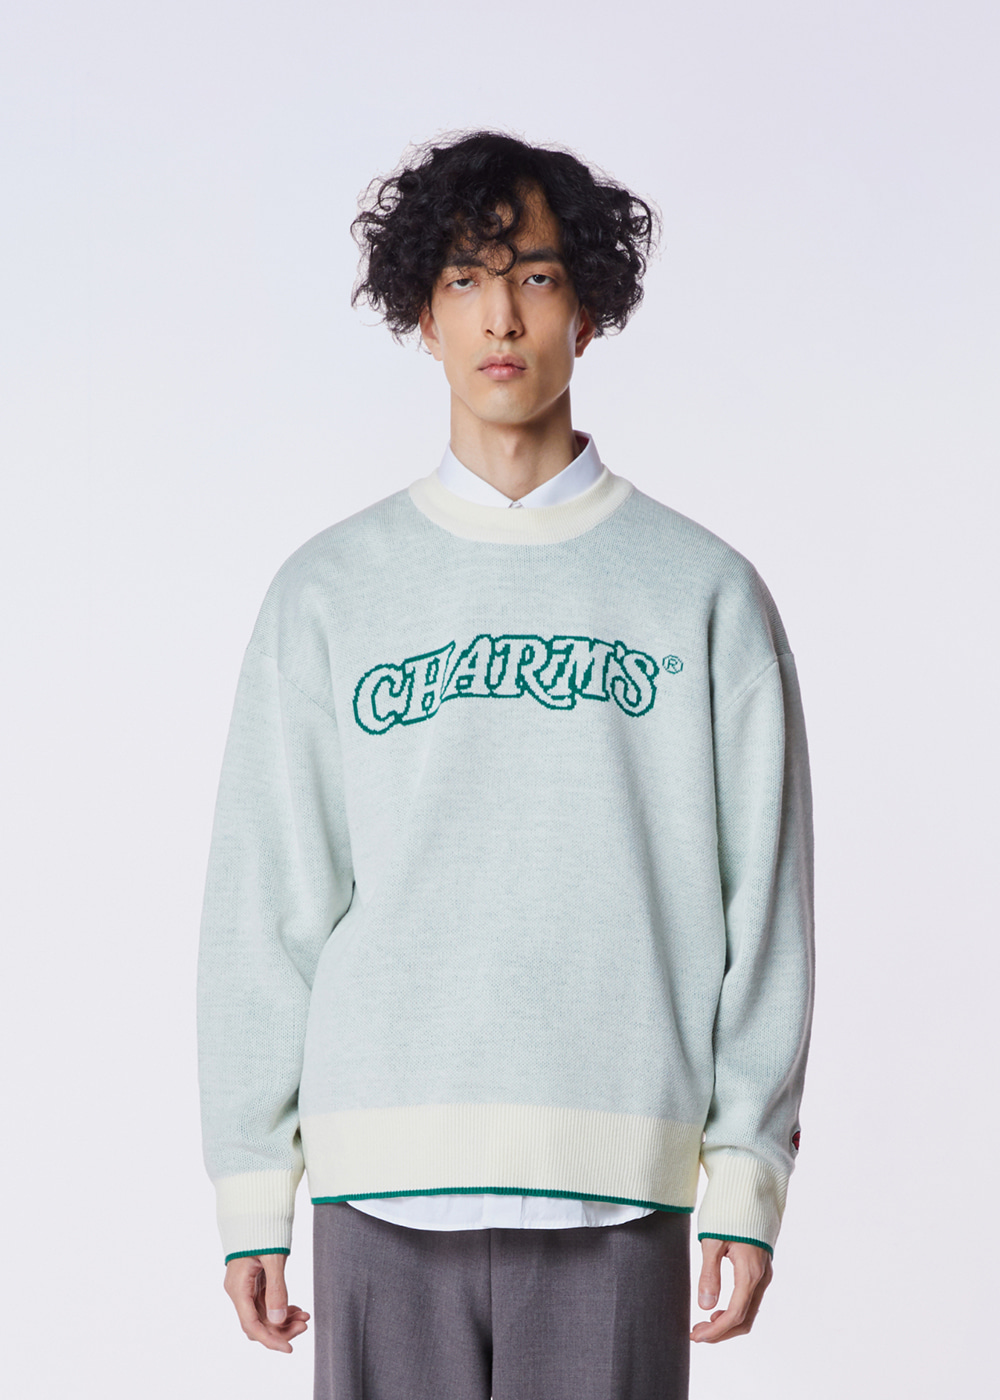 CHARMS WAVE LOGO KNIT BE